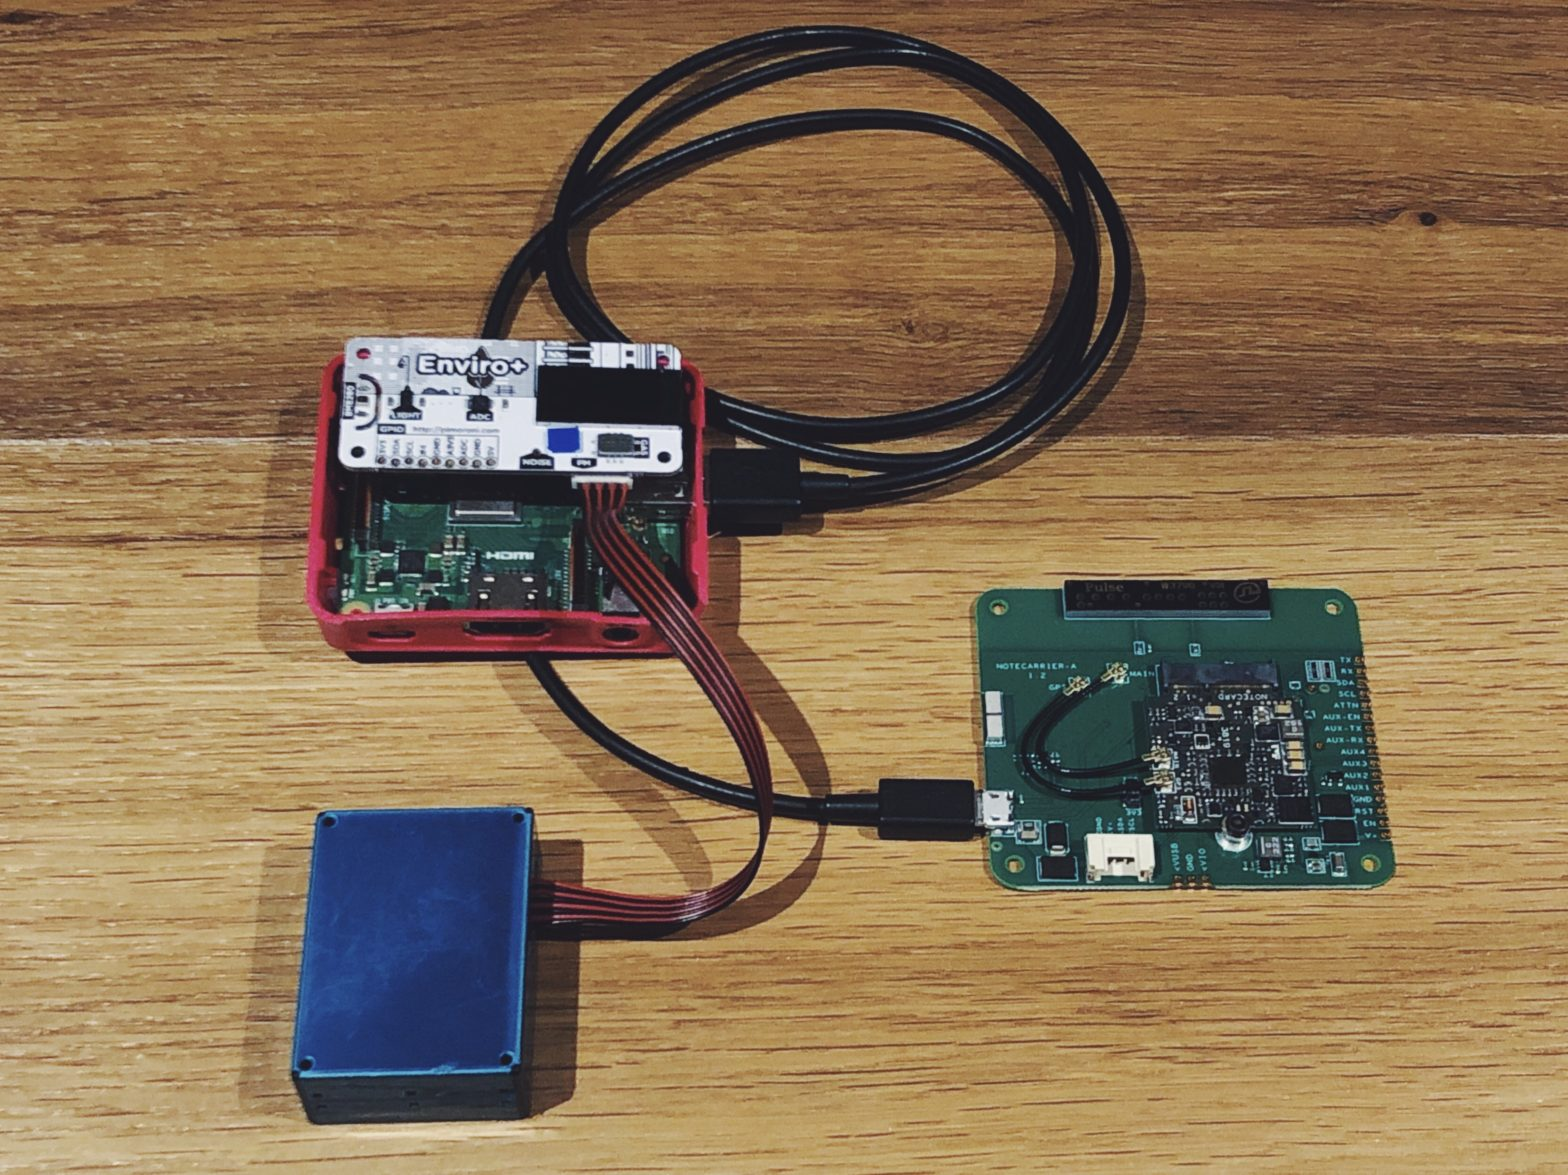 The Notecard connected to the Raspberry Pi A+ with an Enviro+ sensor hat